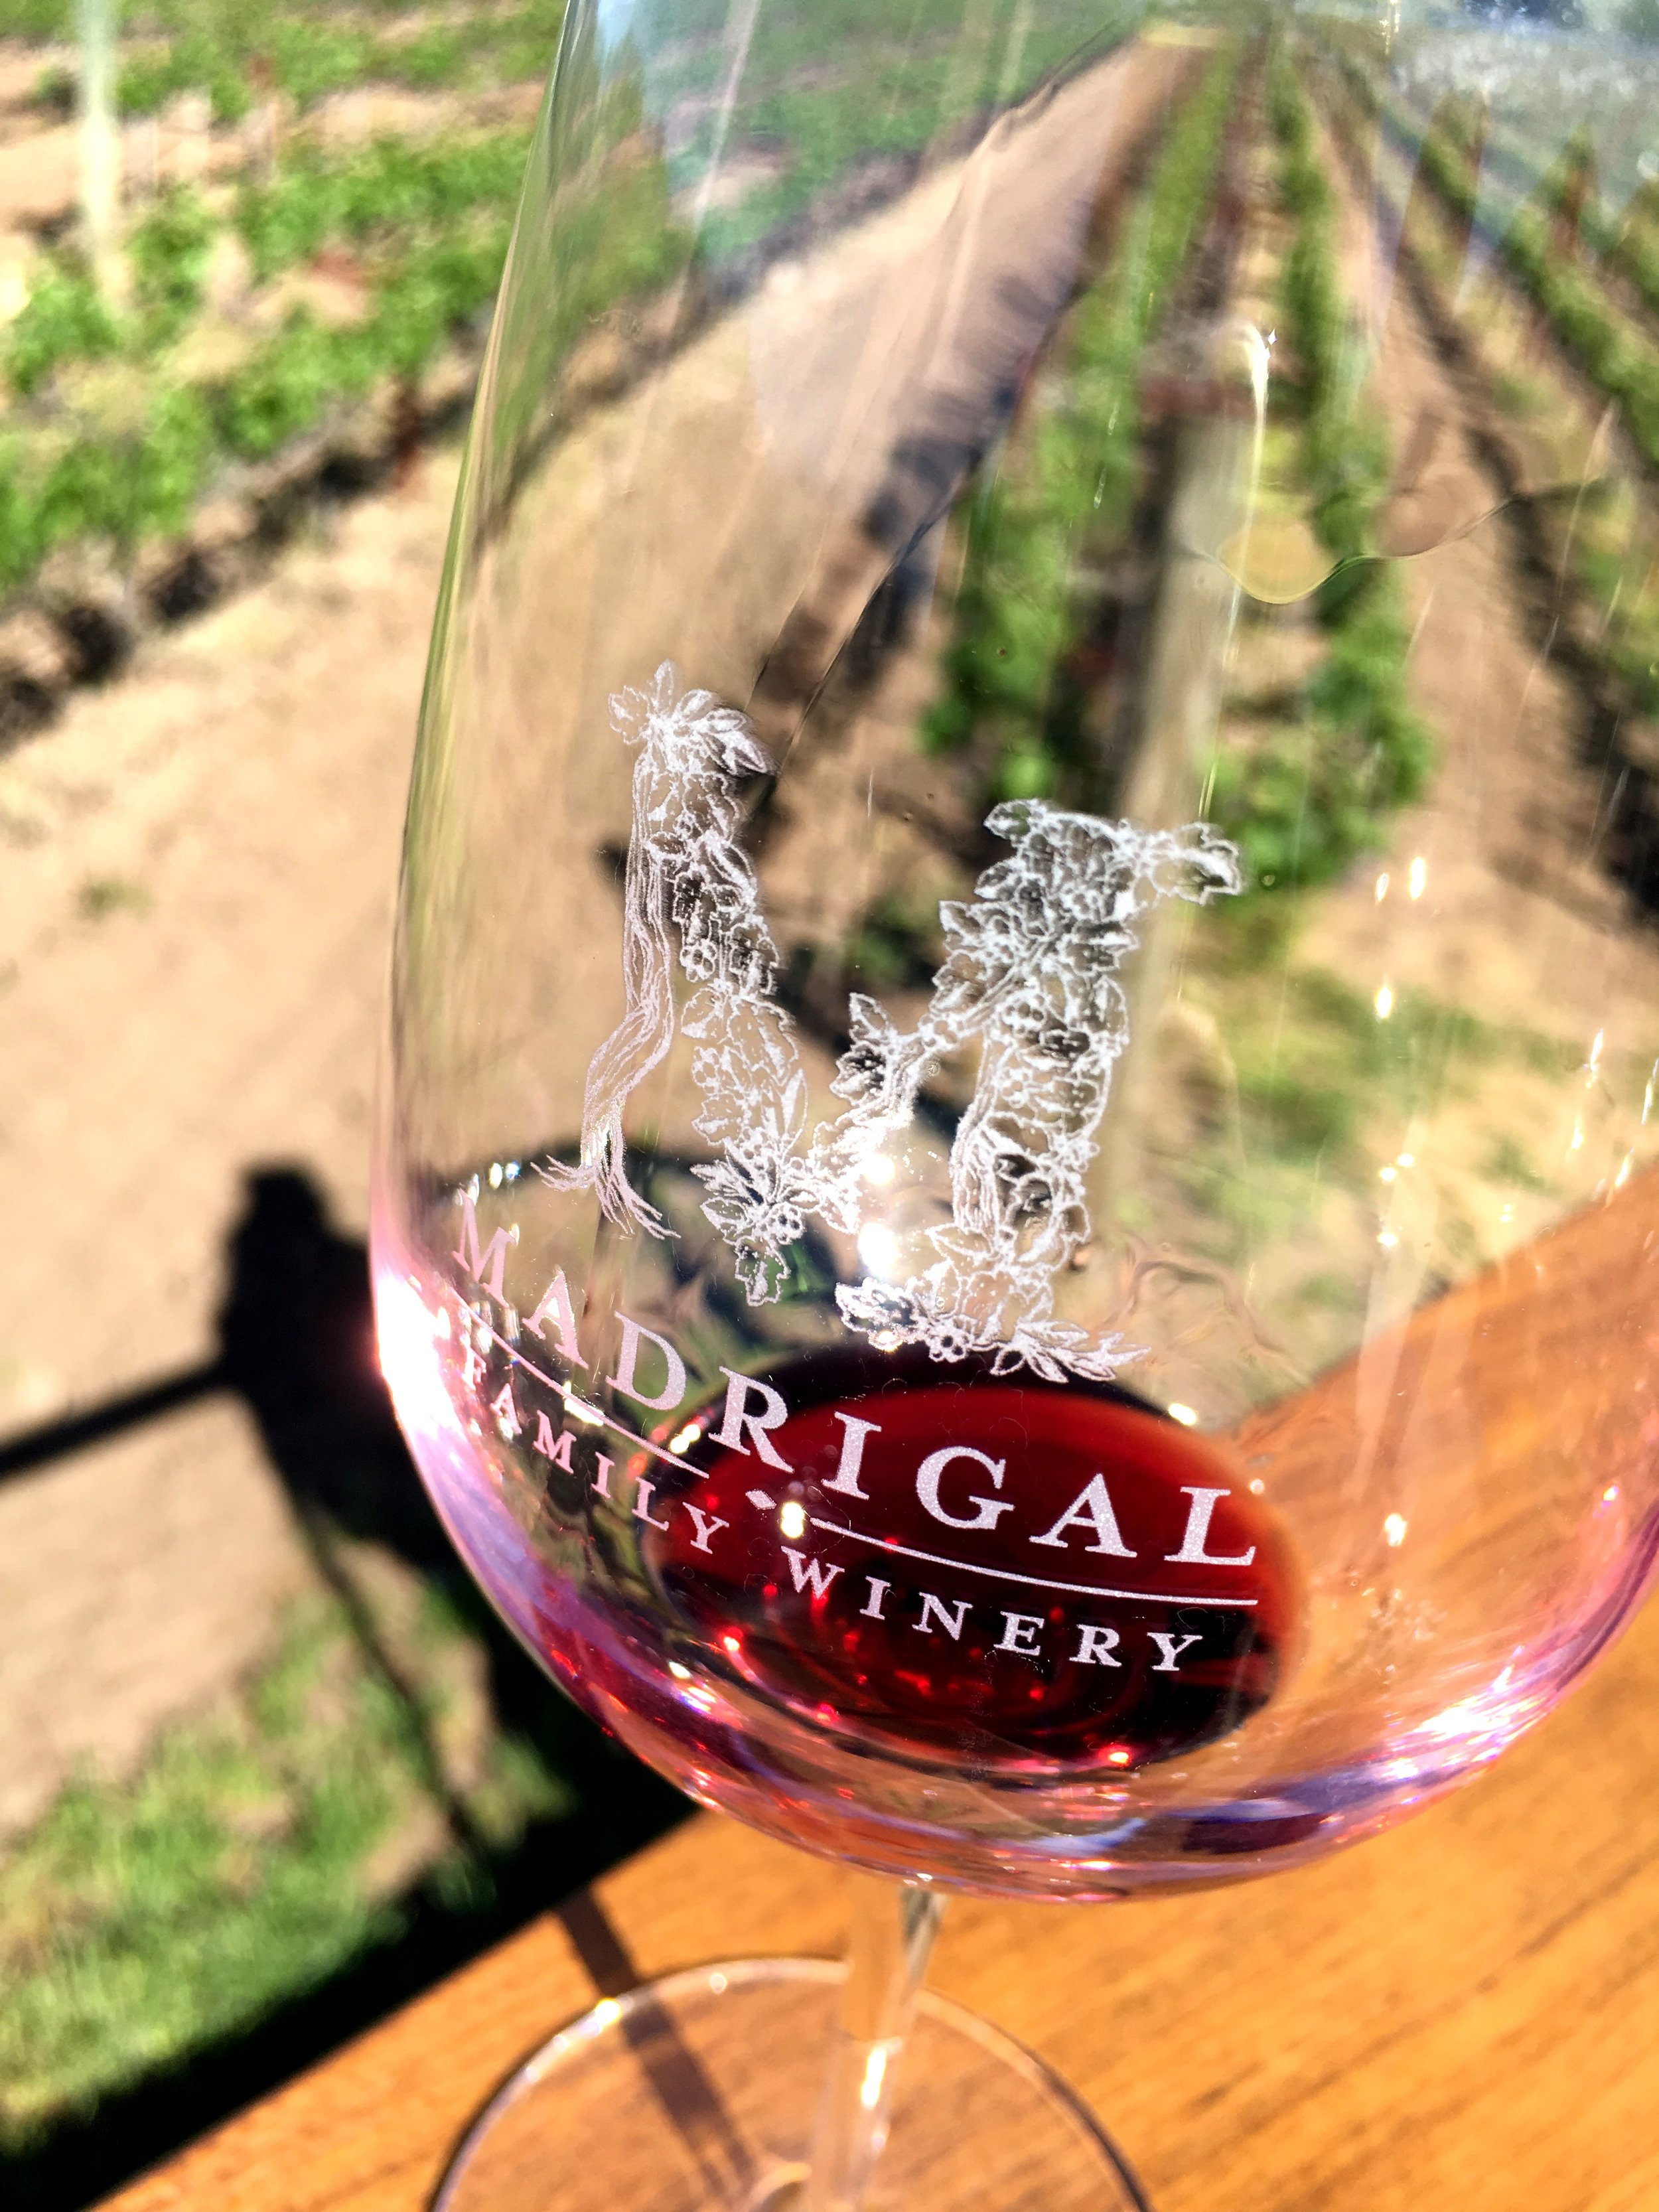 Madrigal Family Winery